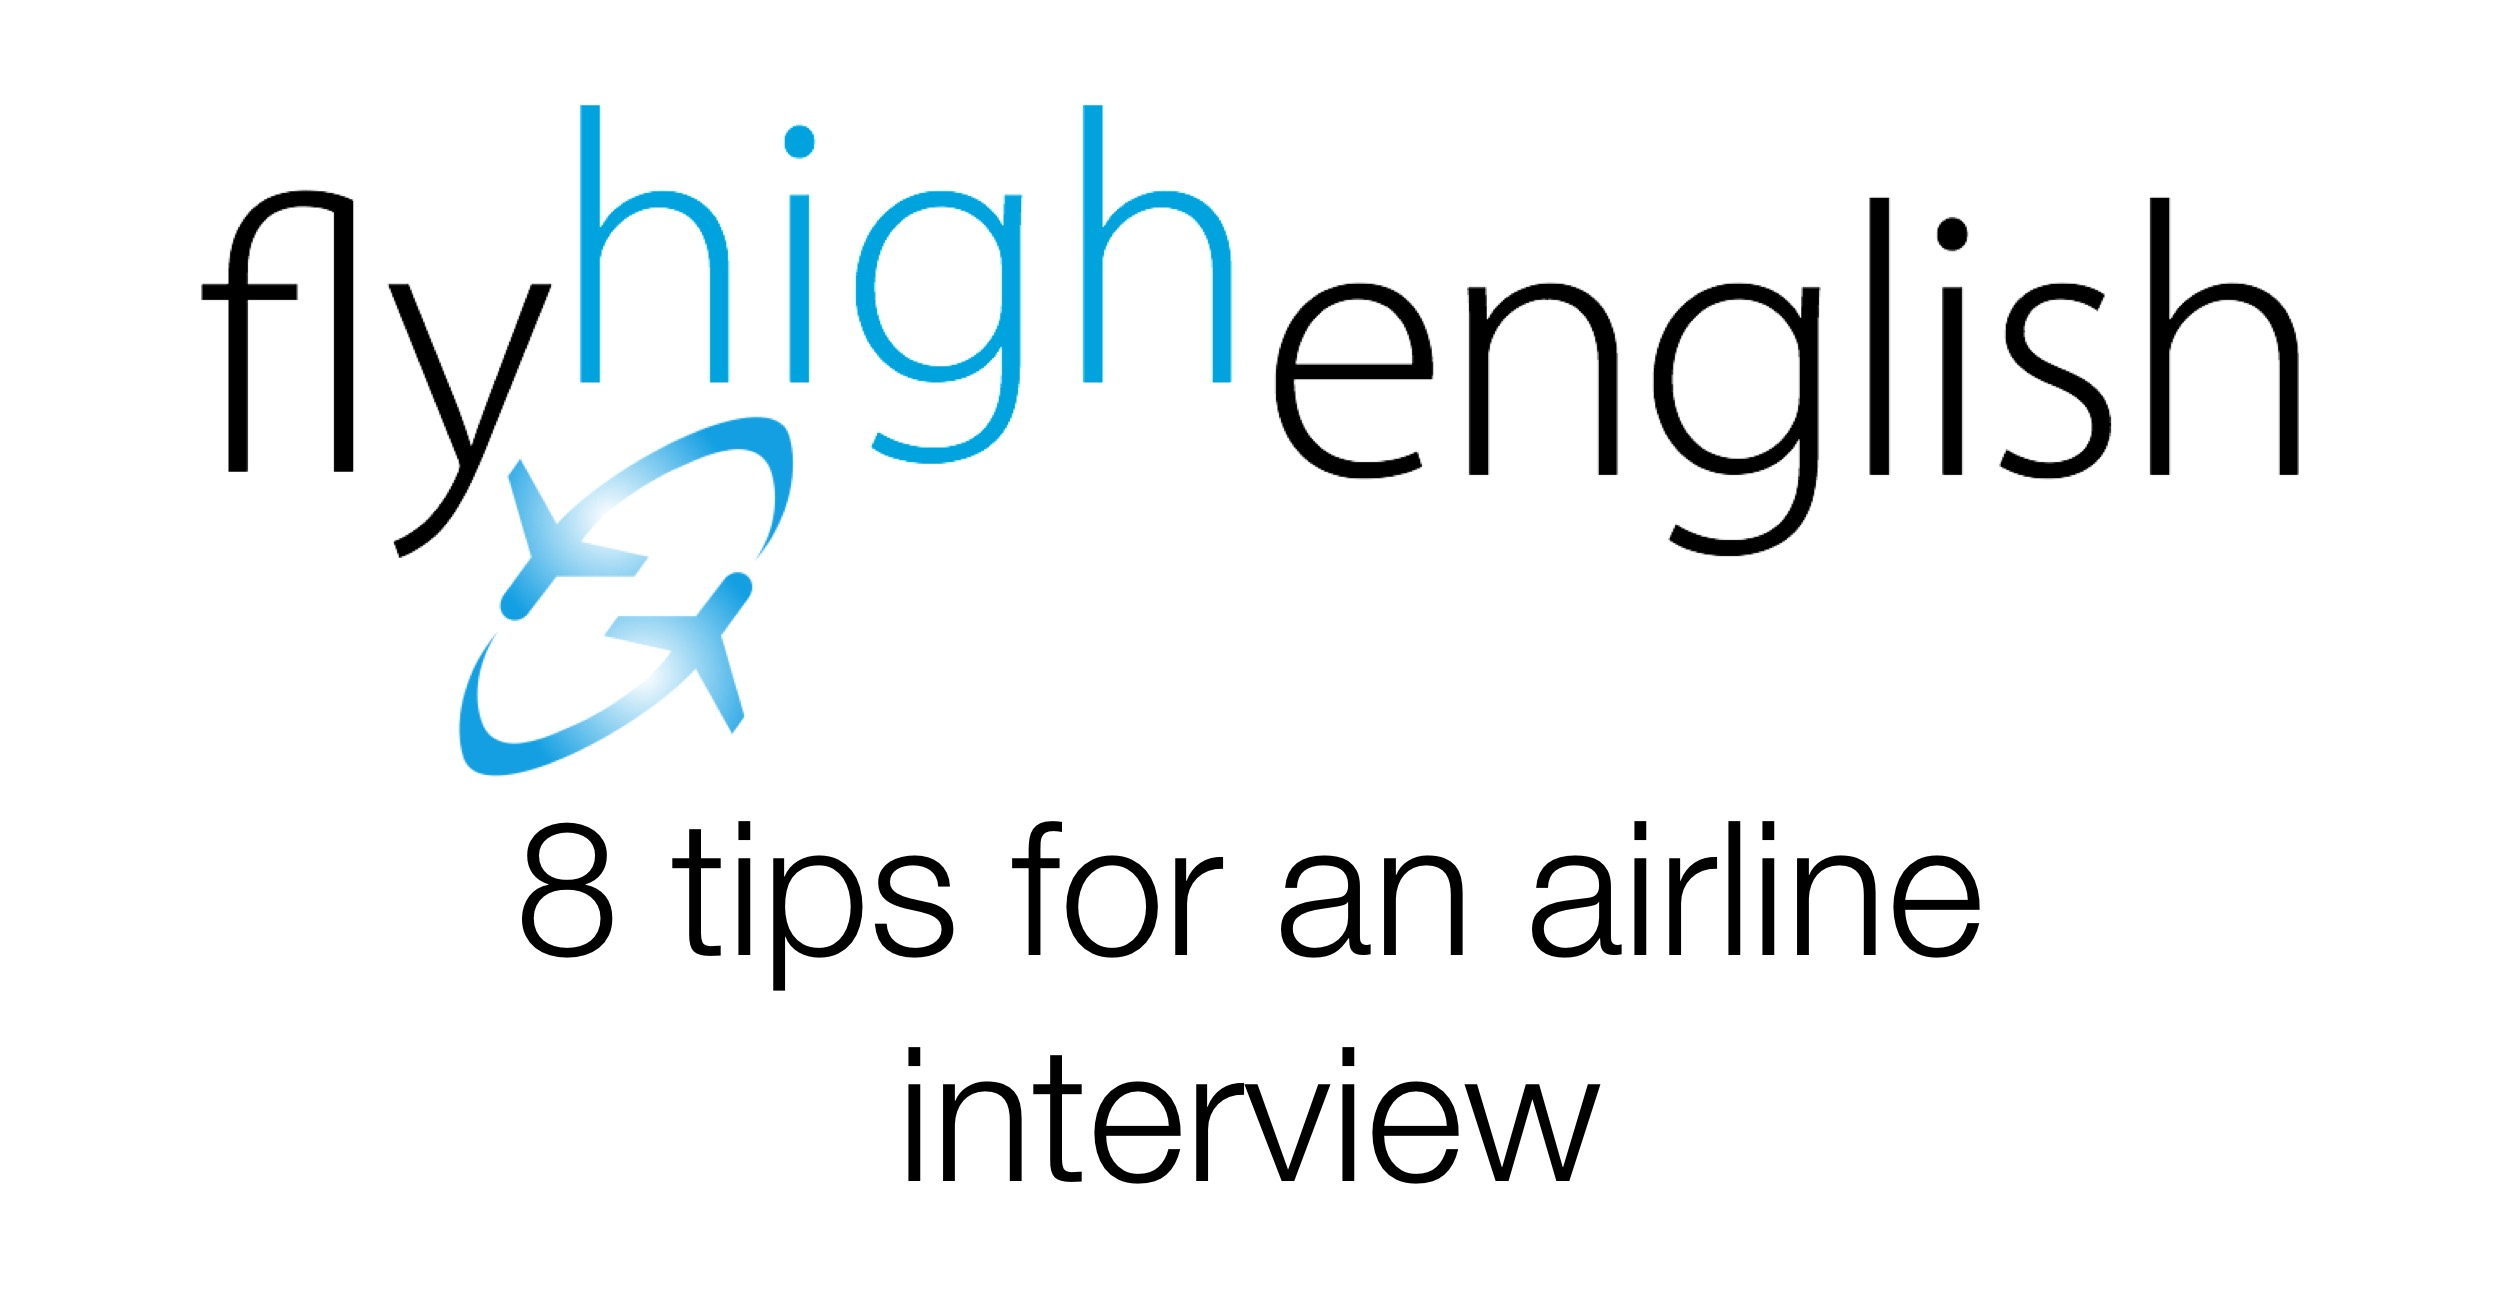 8 tips for an airline interview.